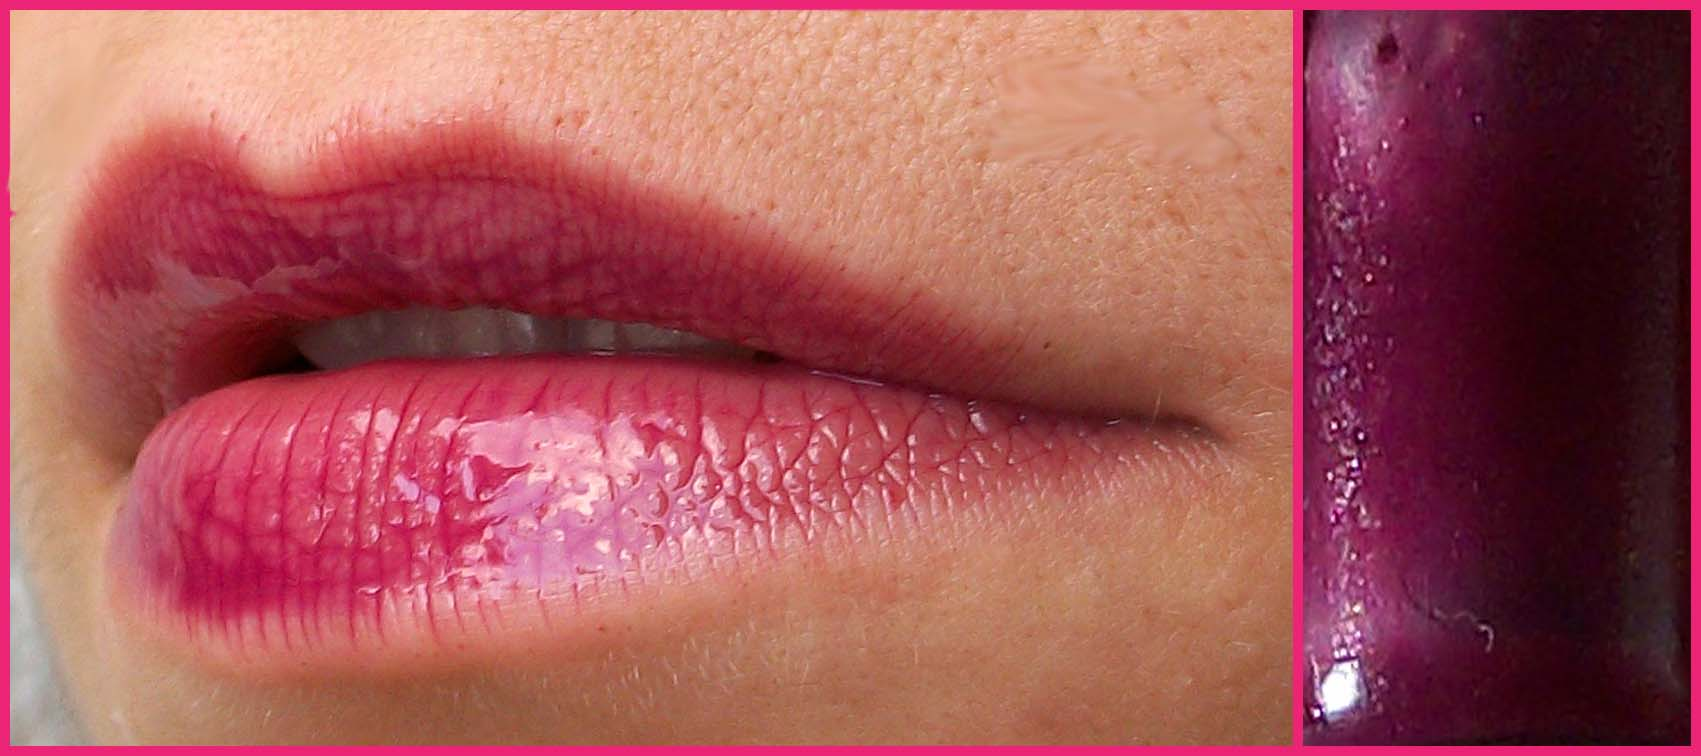 immagine lip gloss ciclamino fatto in casa homemade sfumaturemakeup & beauty